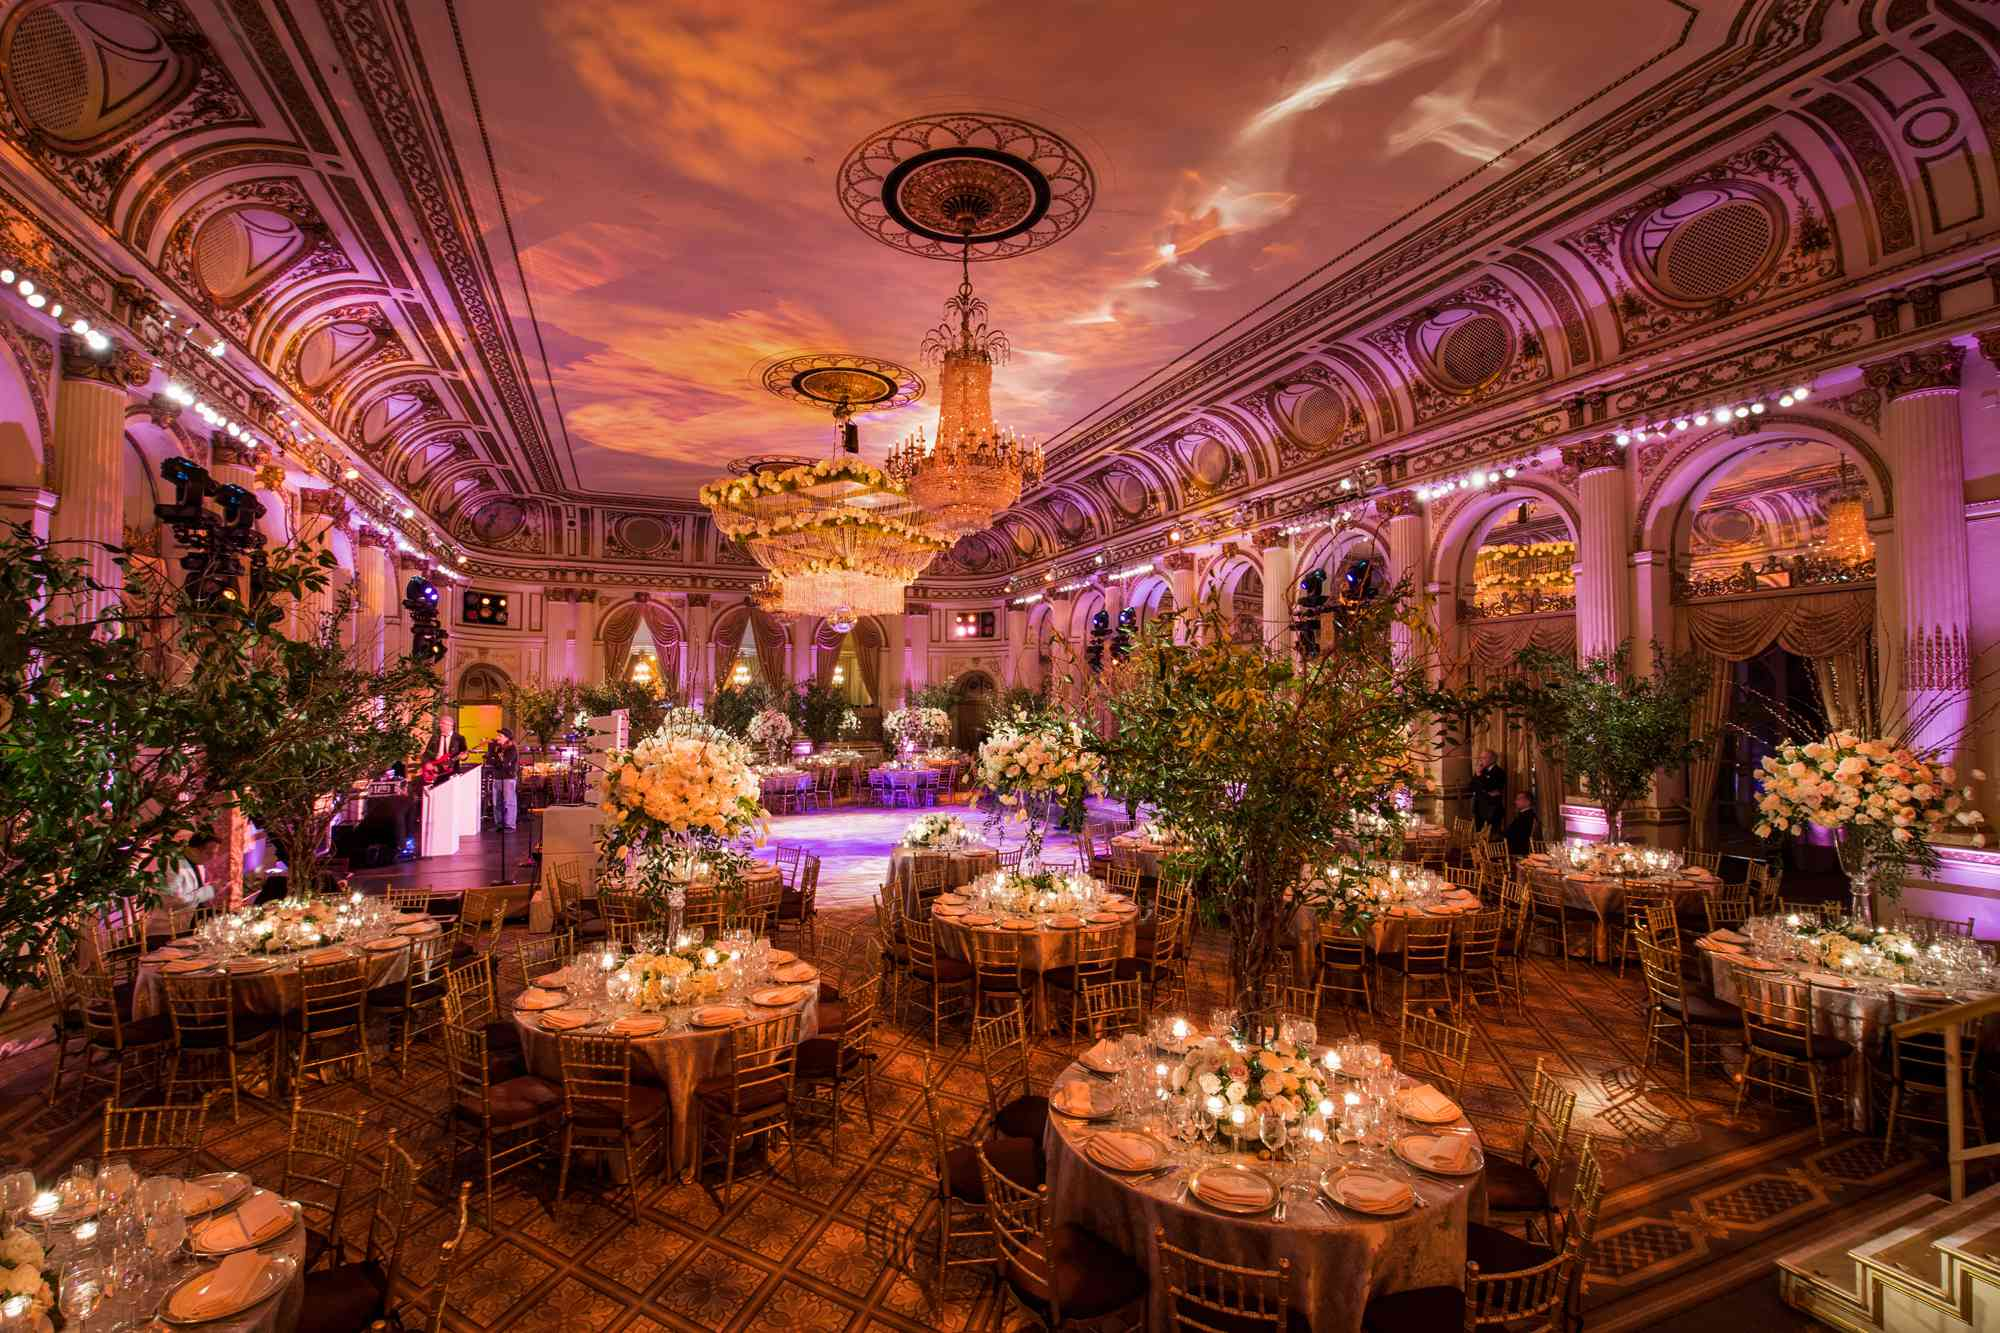 Grand indoor wedding reception featuring uplighting, chandeliers, and tall centerpieces